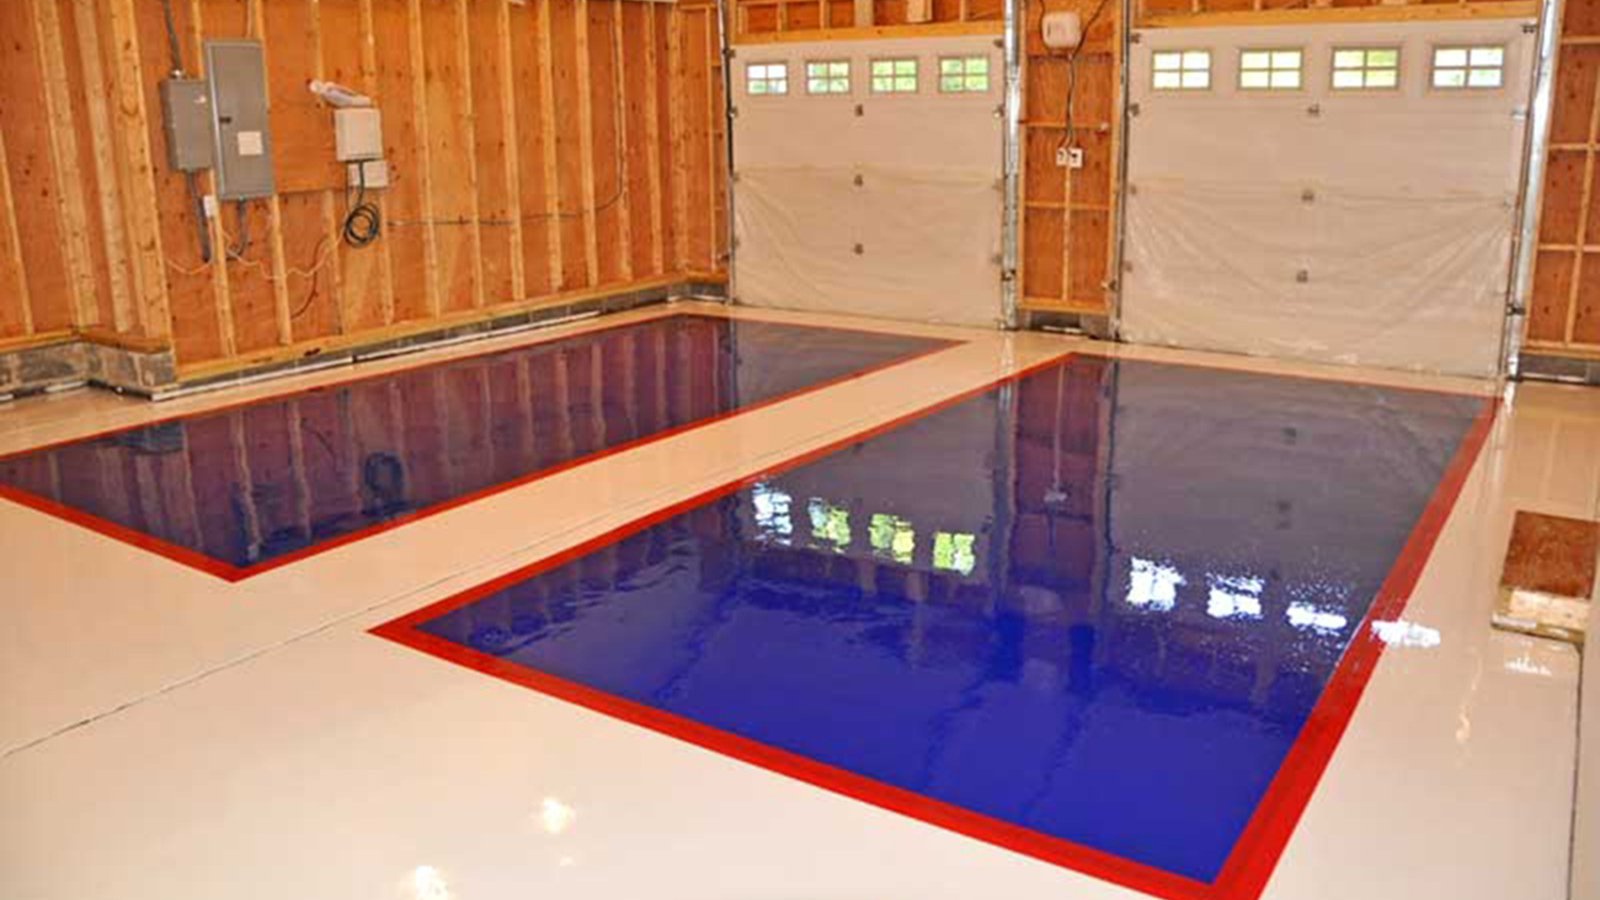 Polymer flooring products for diy wolverine coatings corporation wolverine coatings diy epoxy garage floor solutioingenieria Choice Image